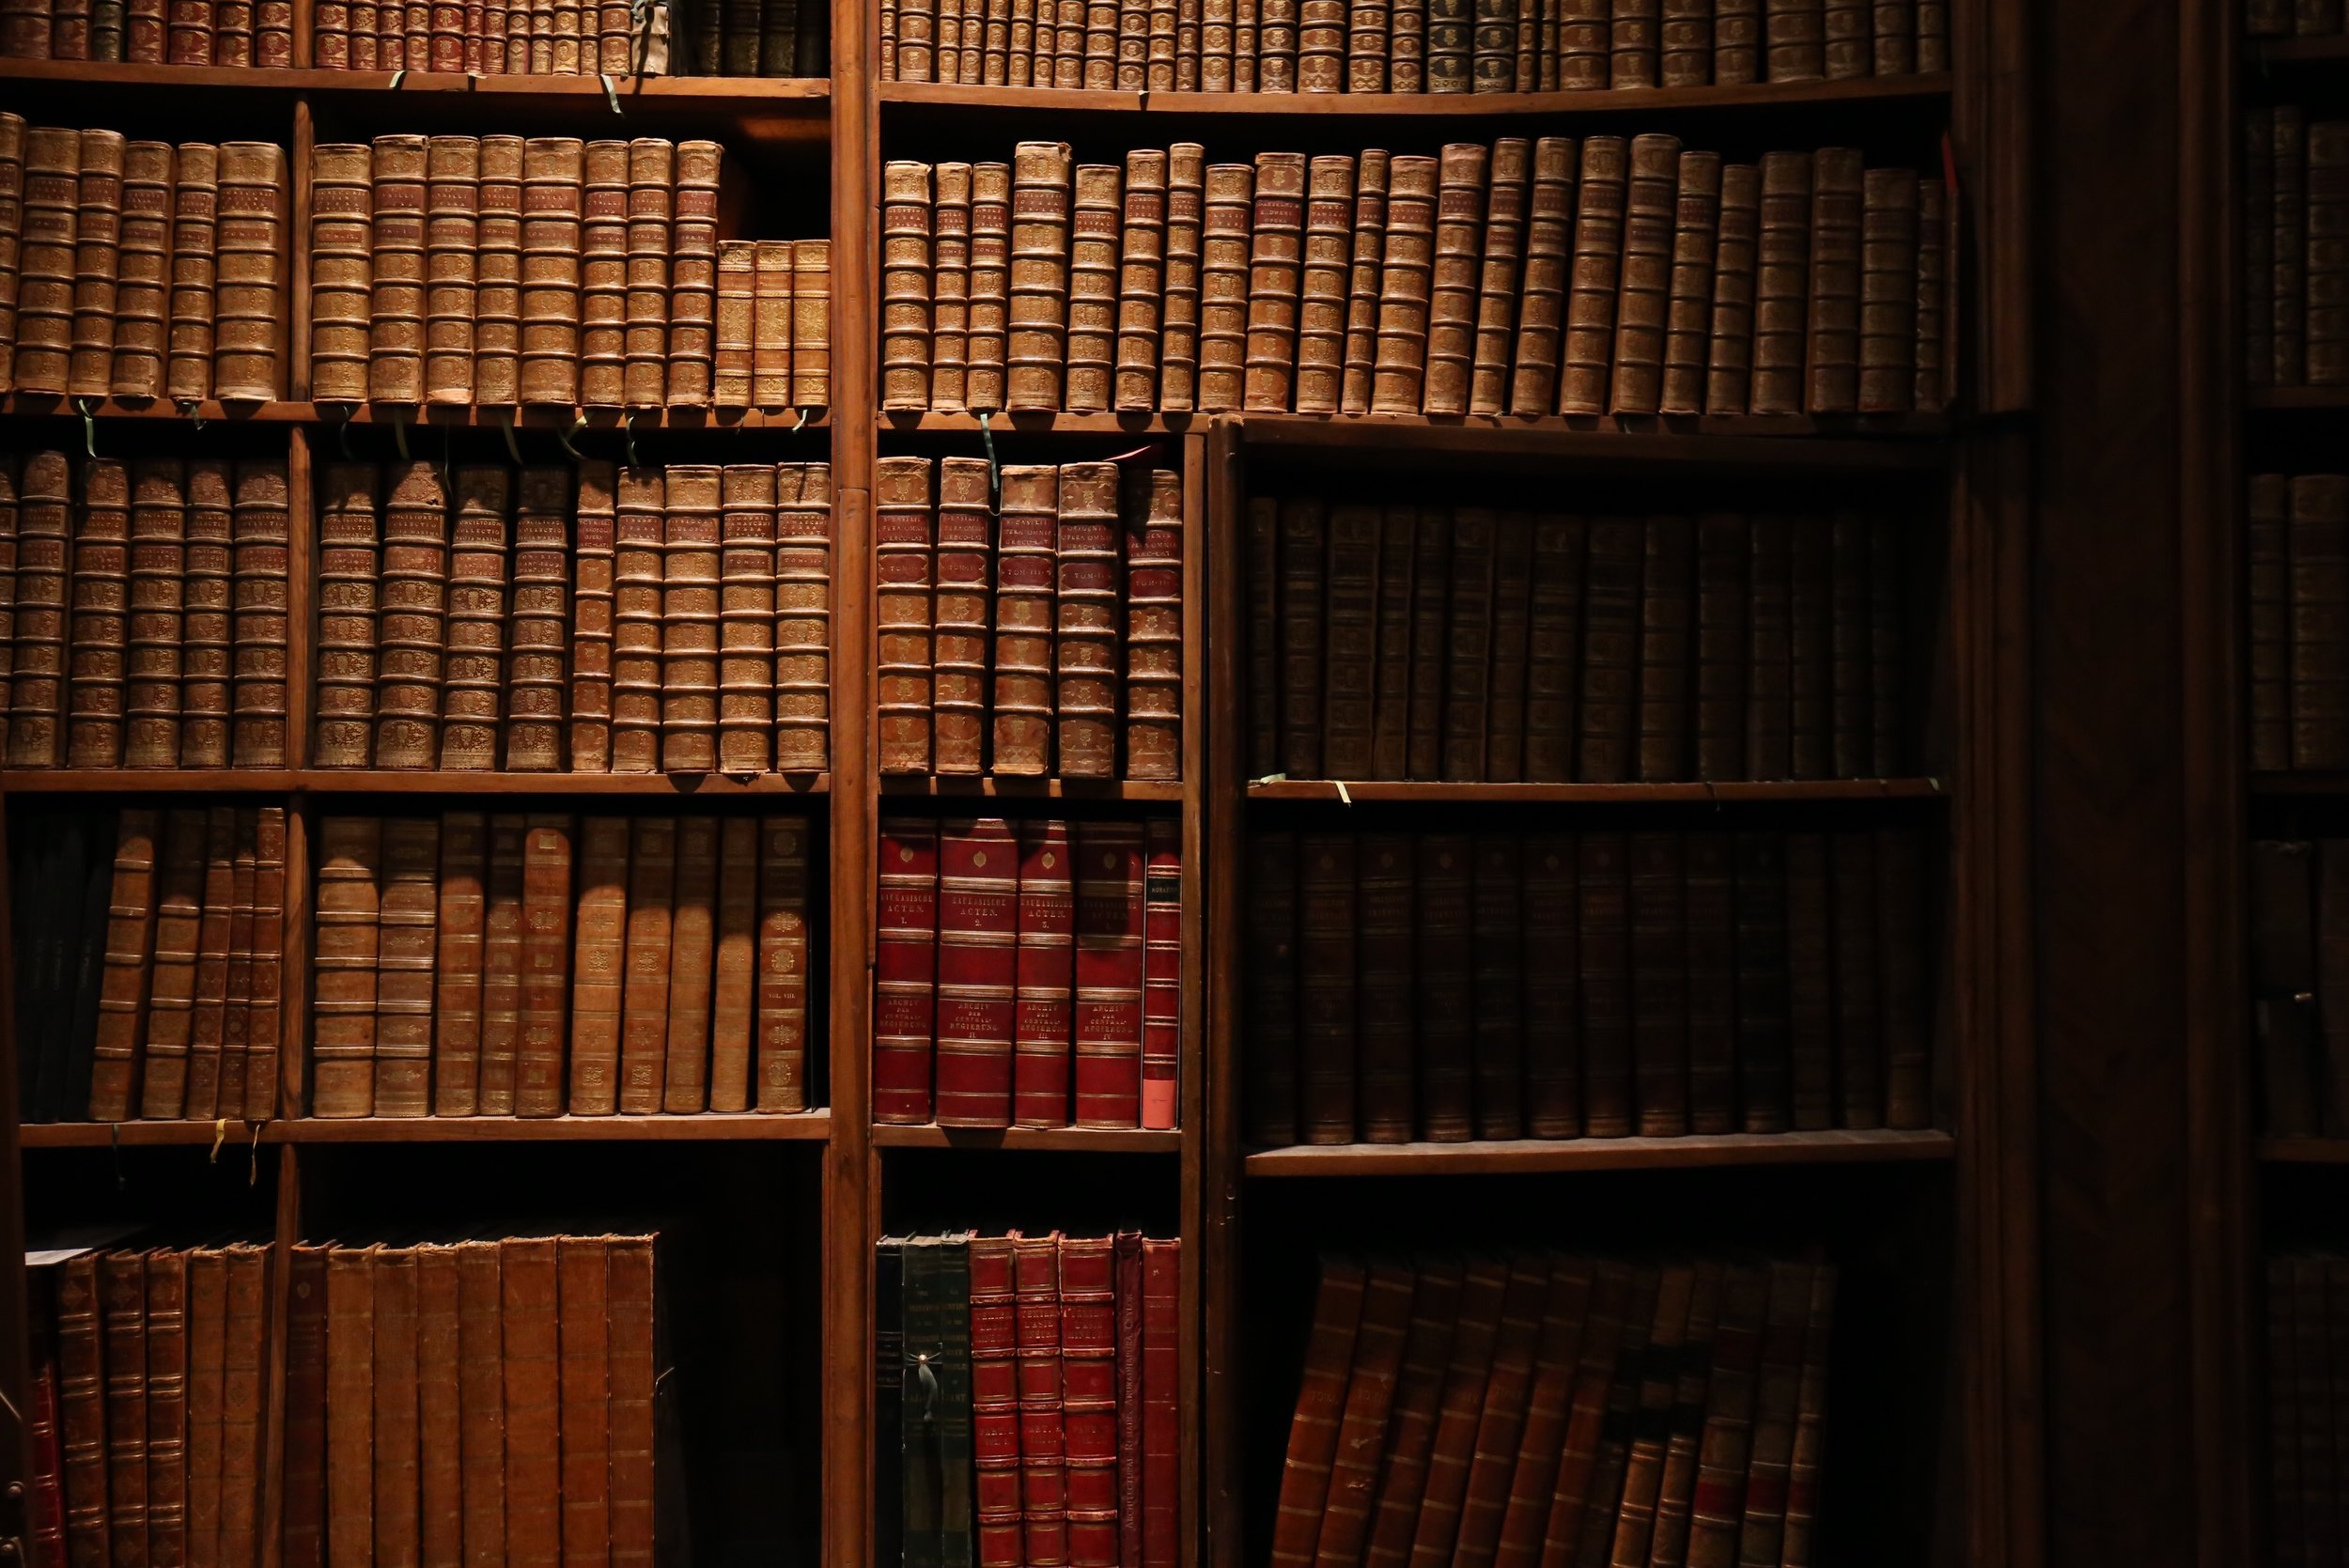 A secret doorway amongst the books of an ancient library.